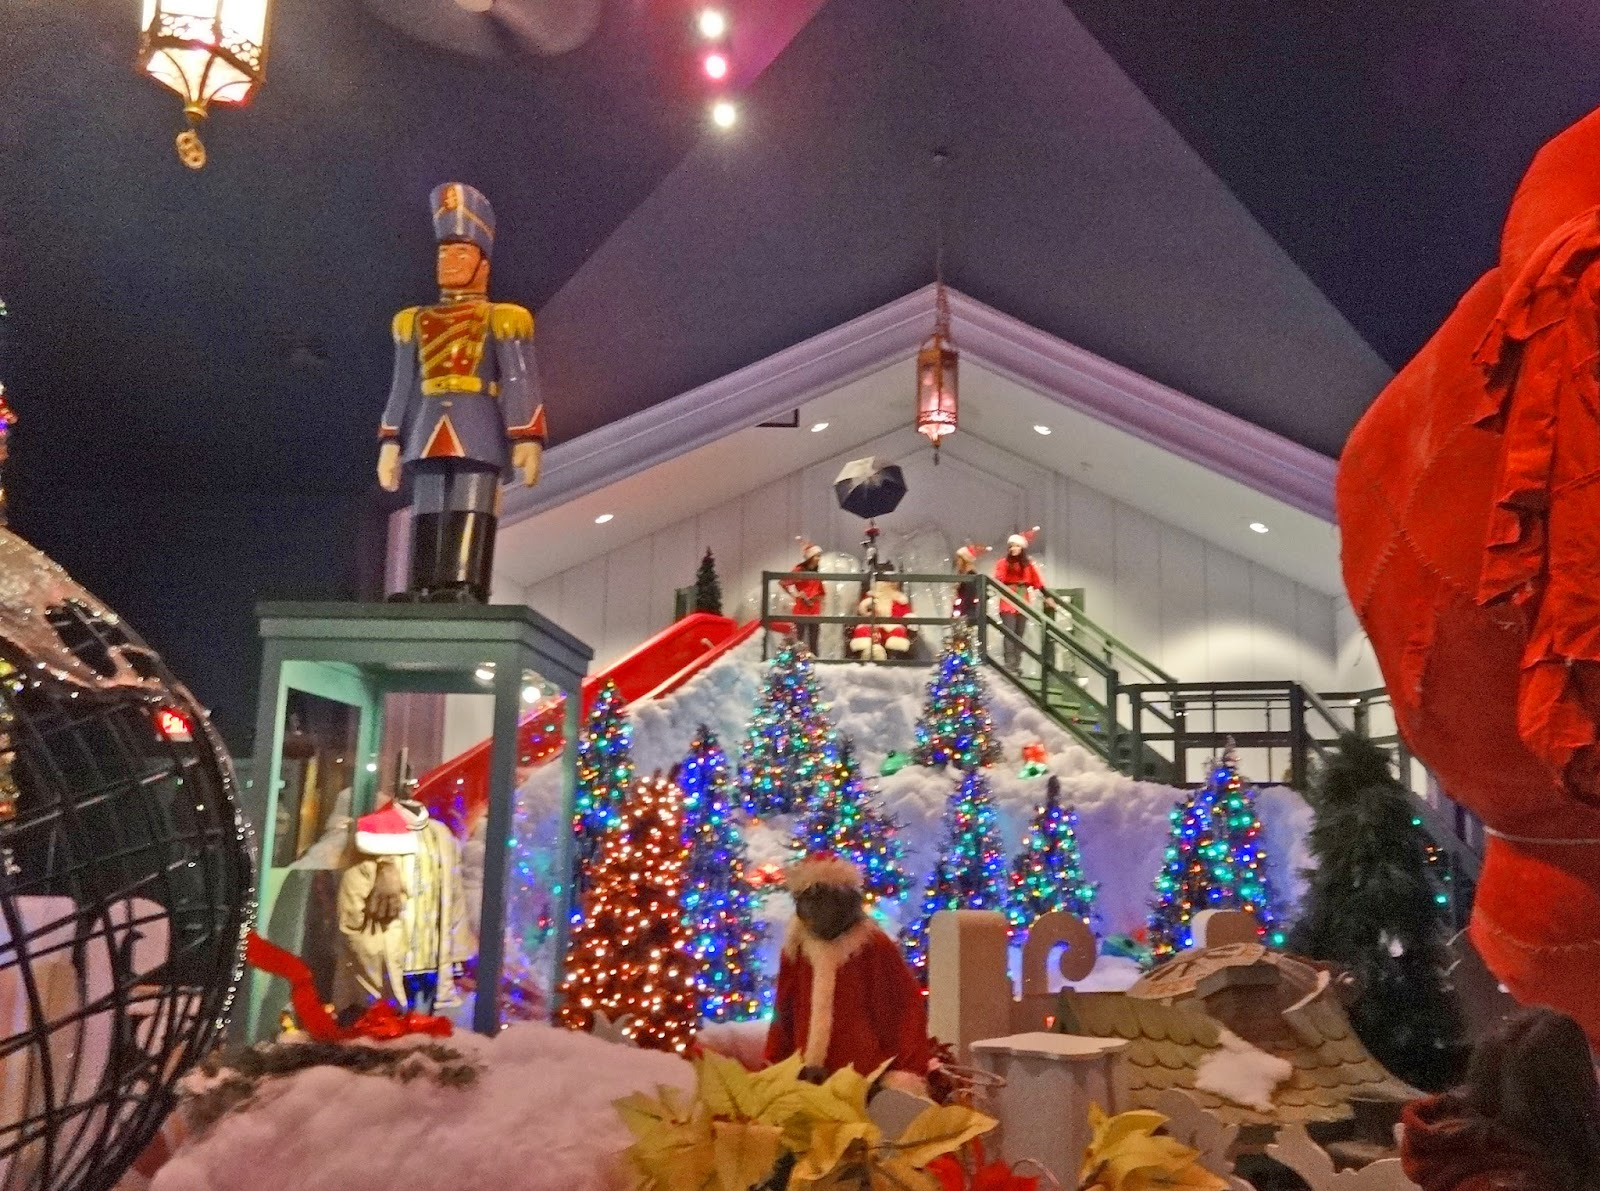 Jax Stumpes: Christmas in Medina, OH (11/22/2014)